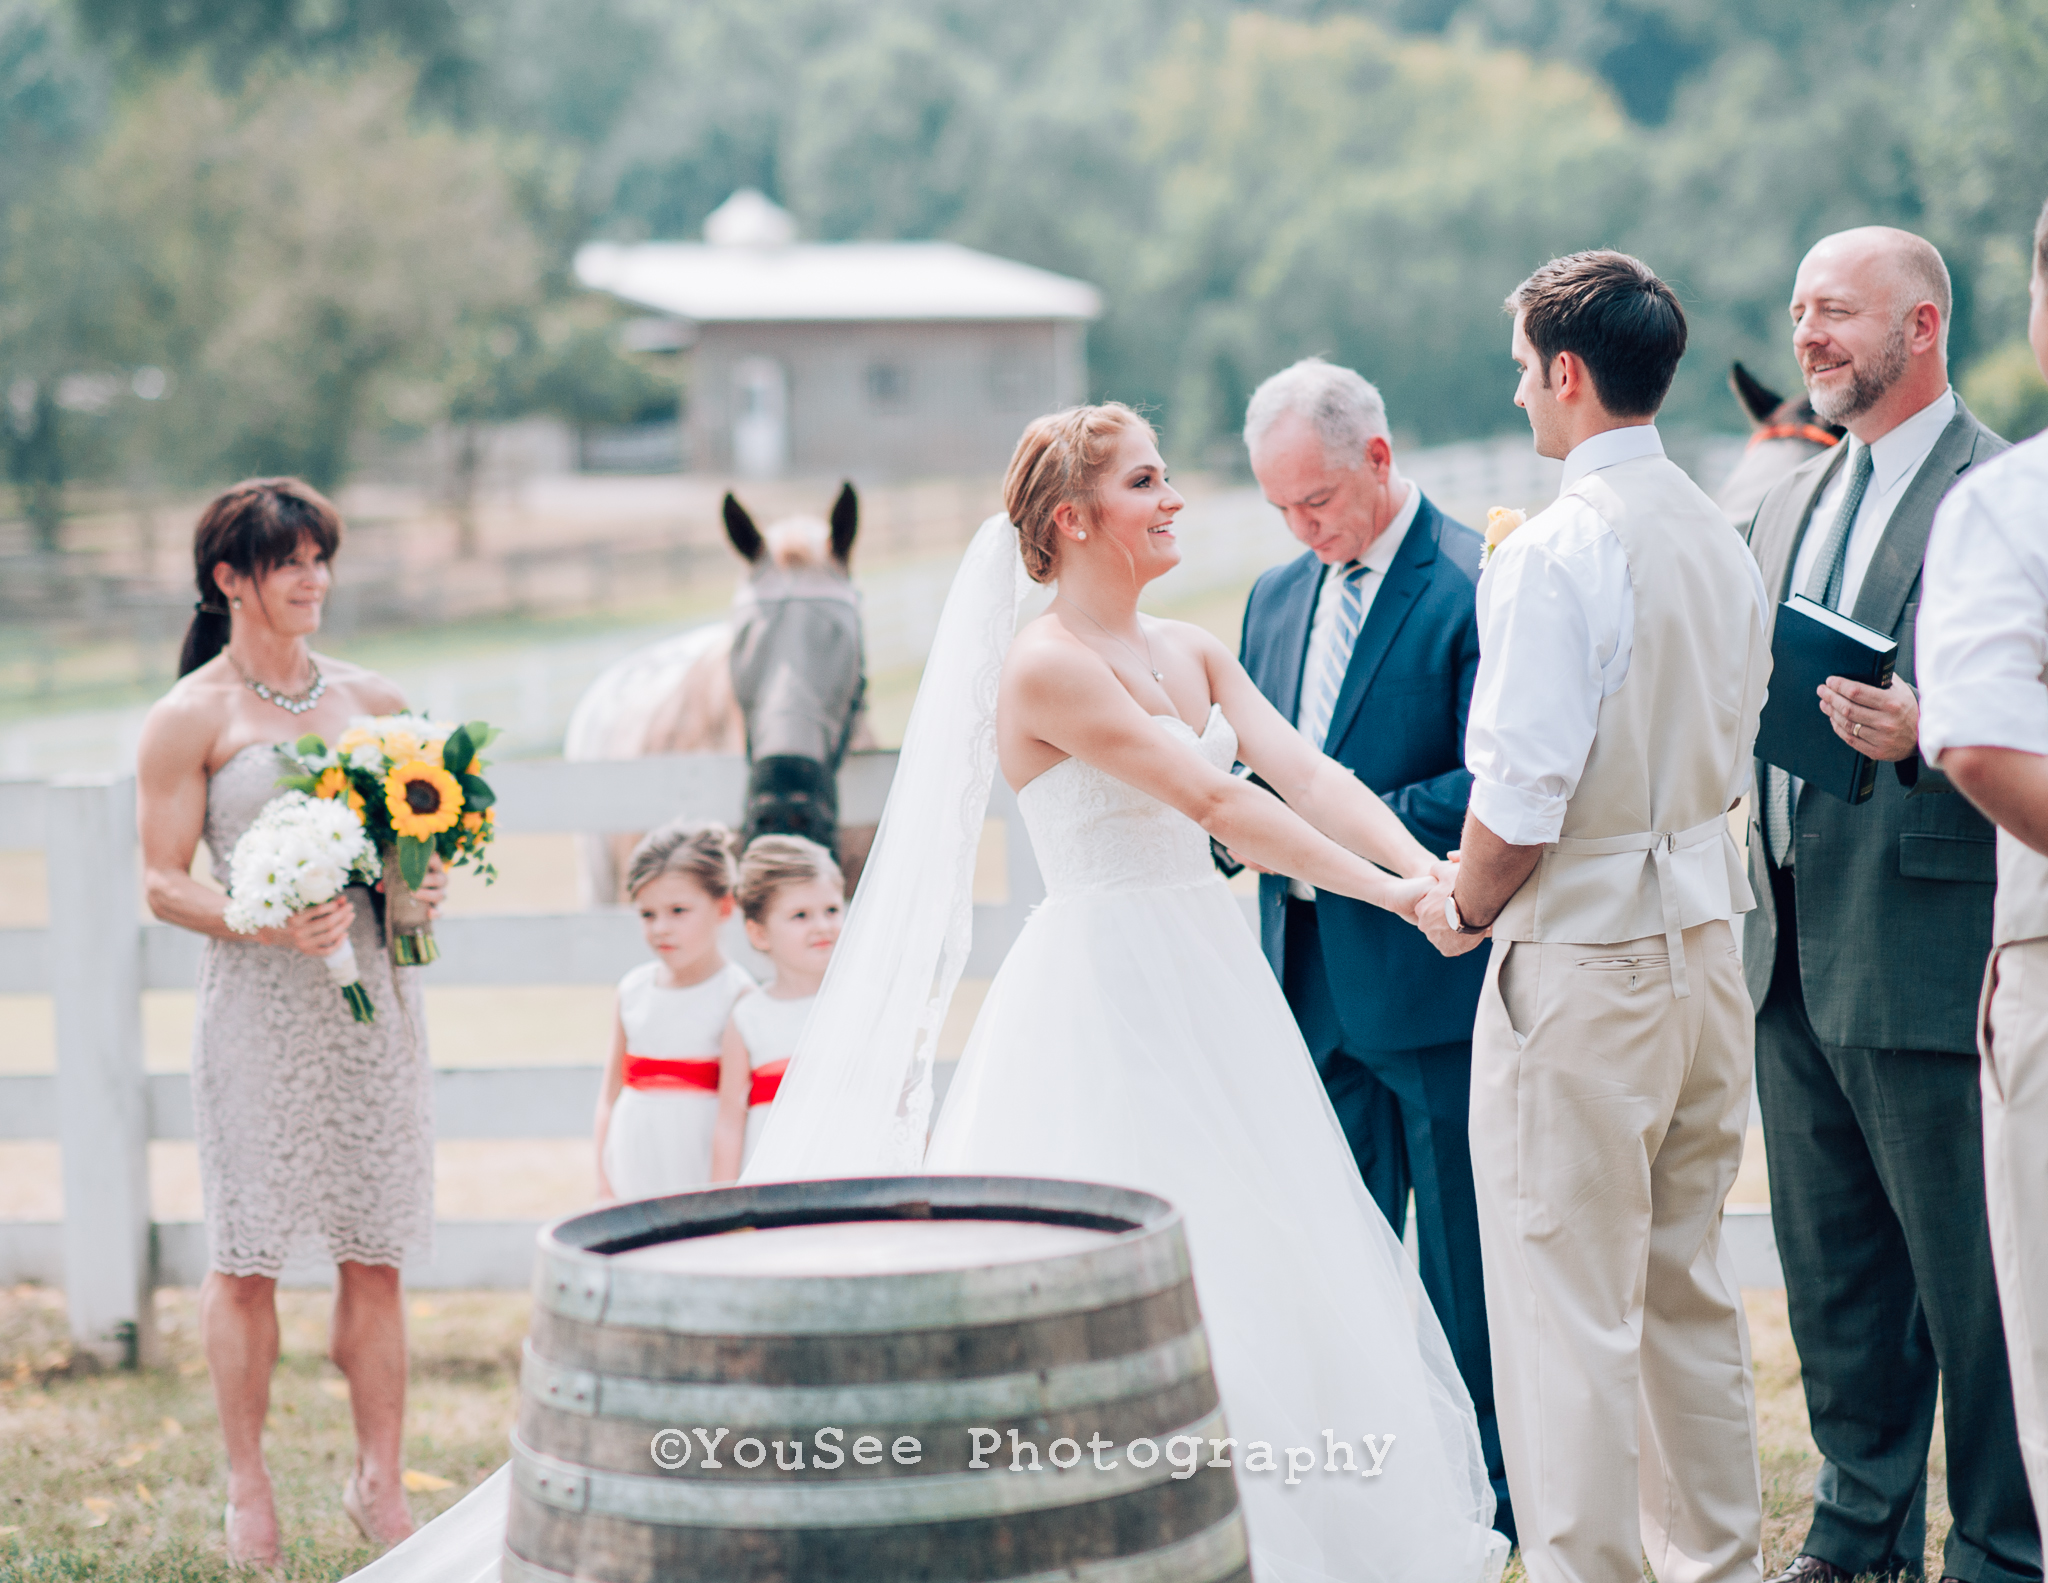 wedding_westwoodfarm_orange_virginia (16)